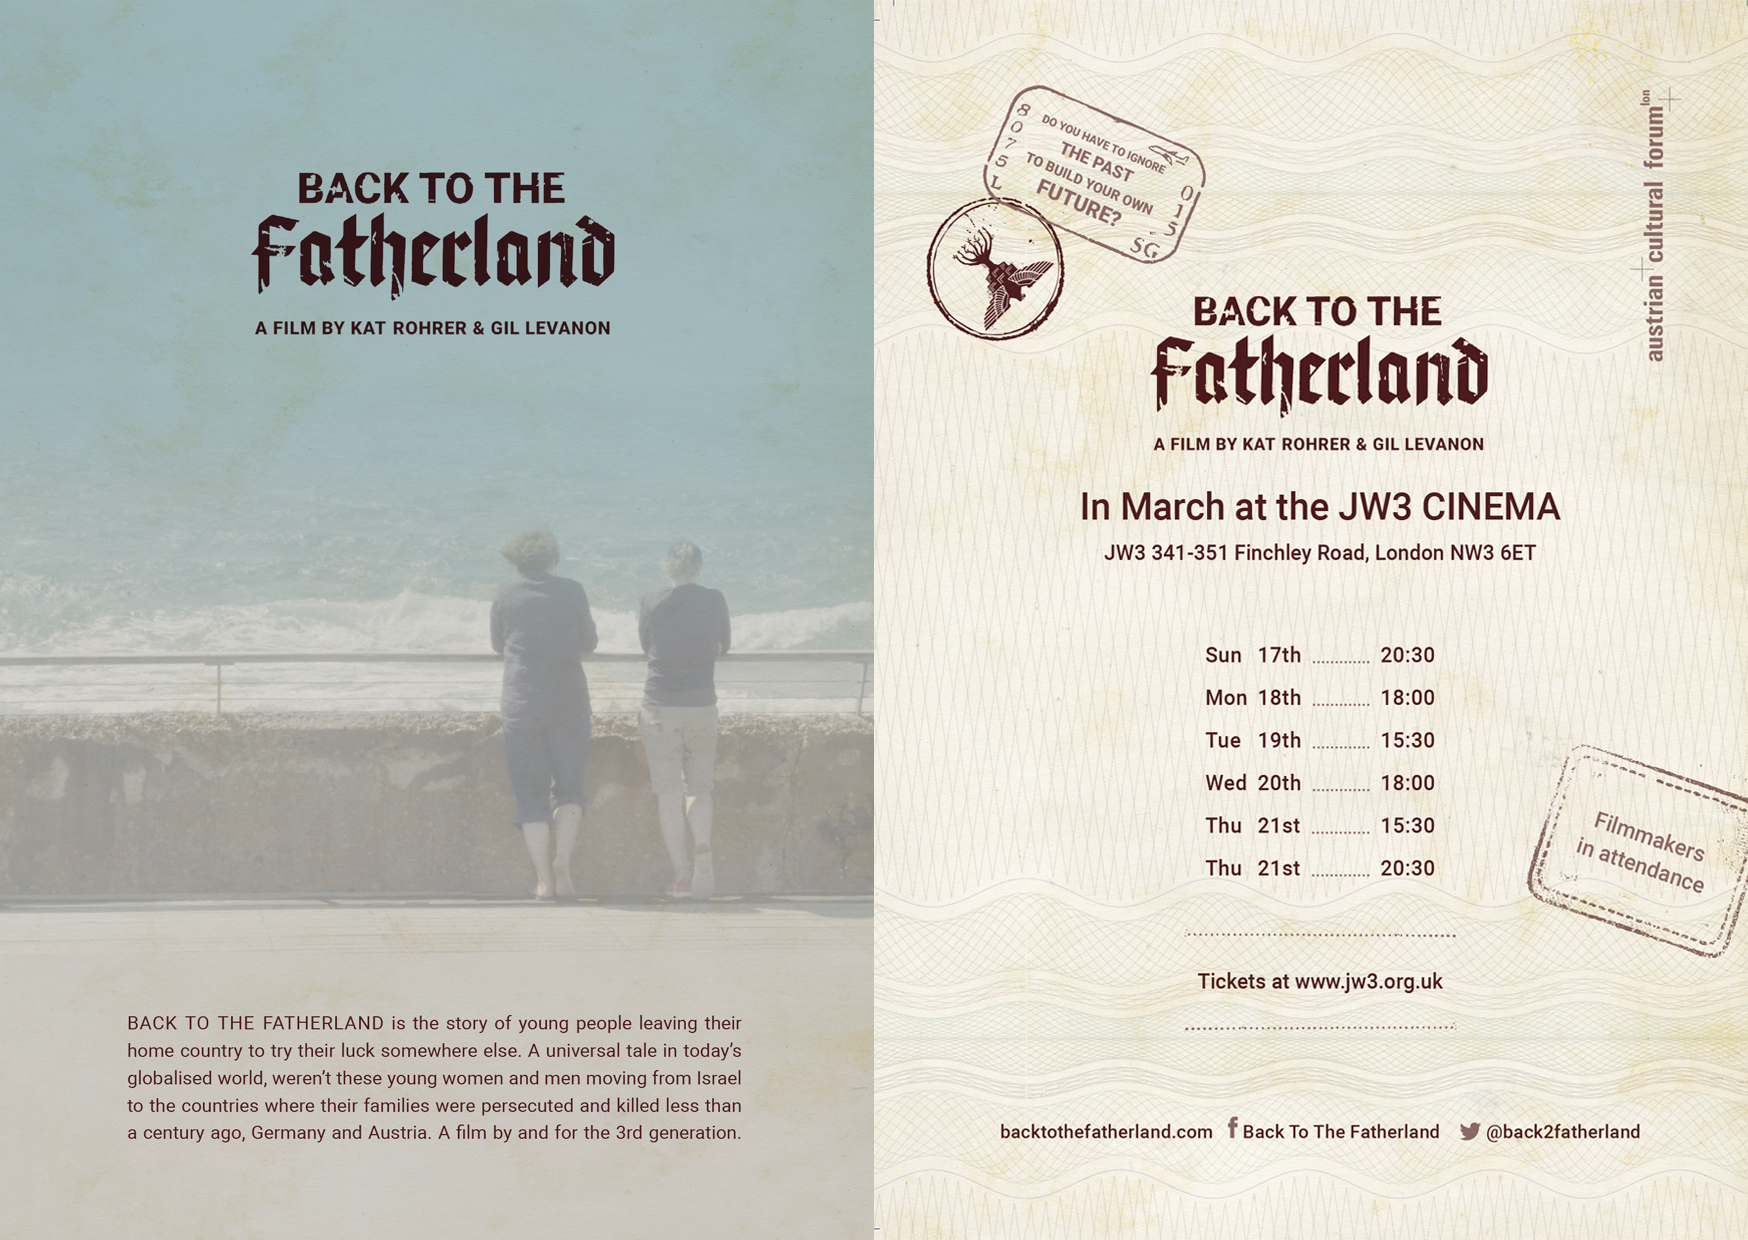 Screening of Back to the Fatherland at JW3